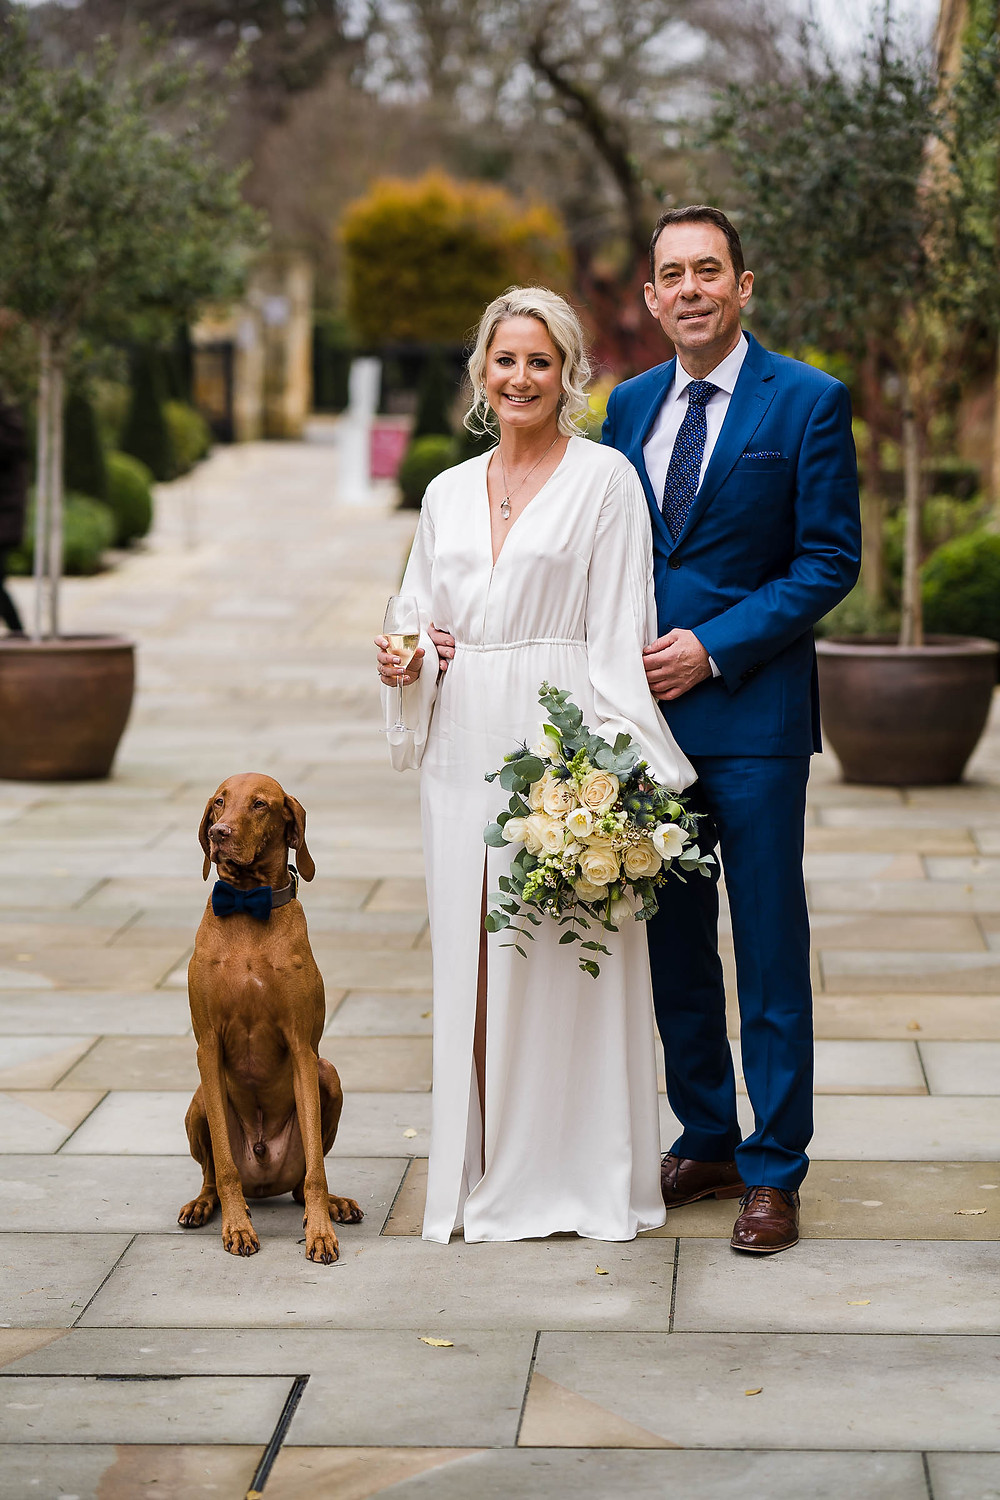 Intimate Winter Wedding at The Lygon Arms Hotel, Broadway